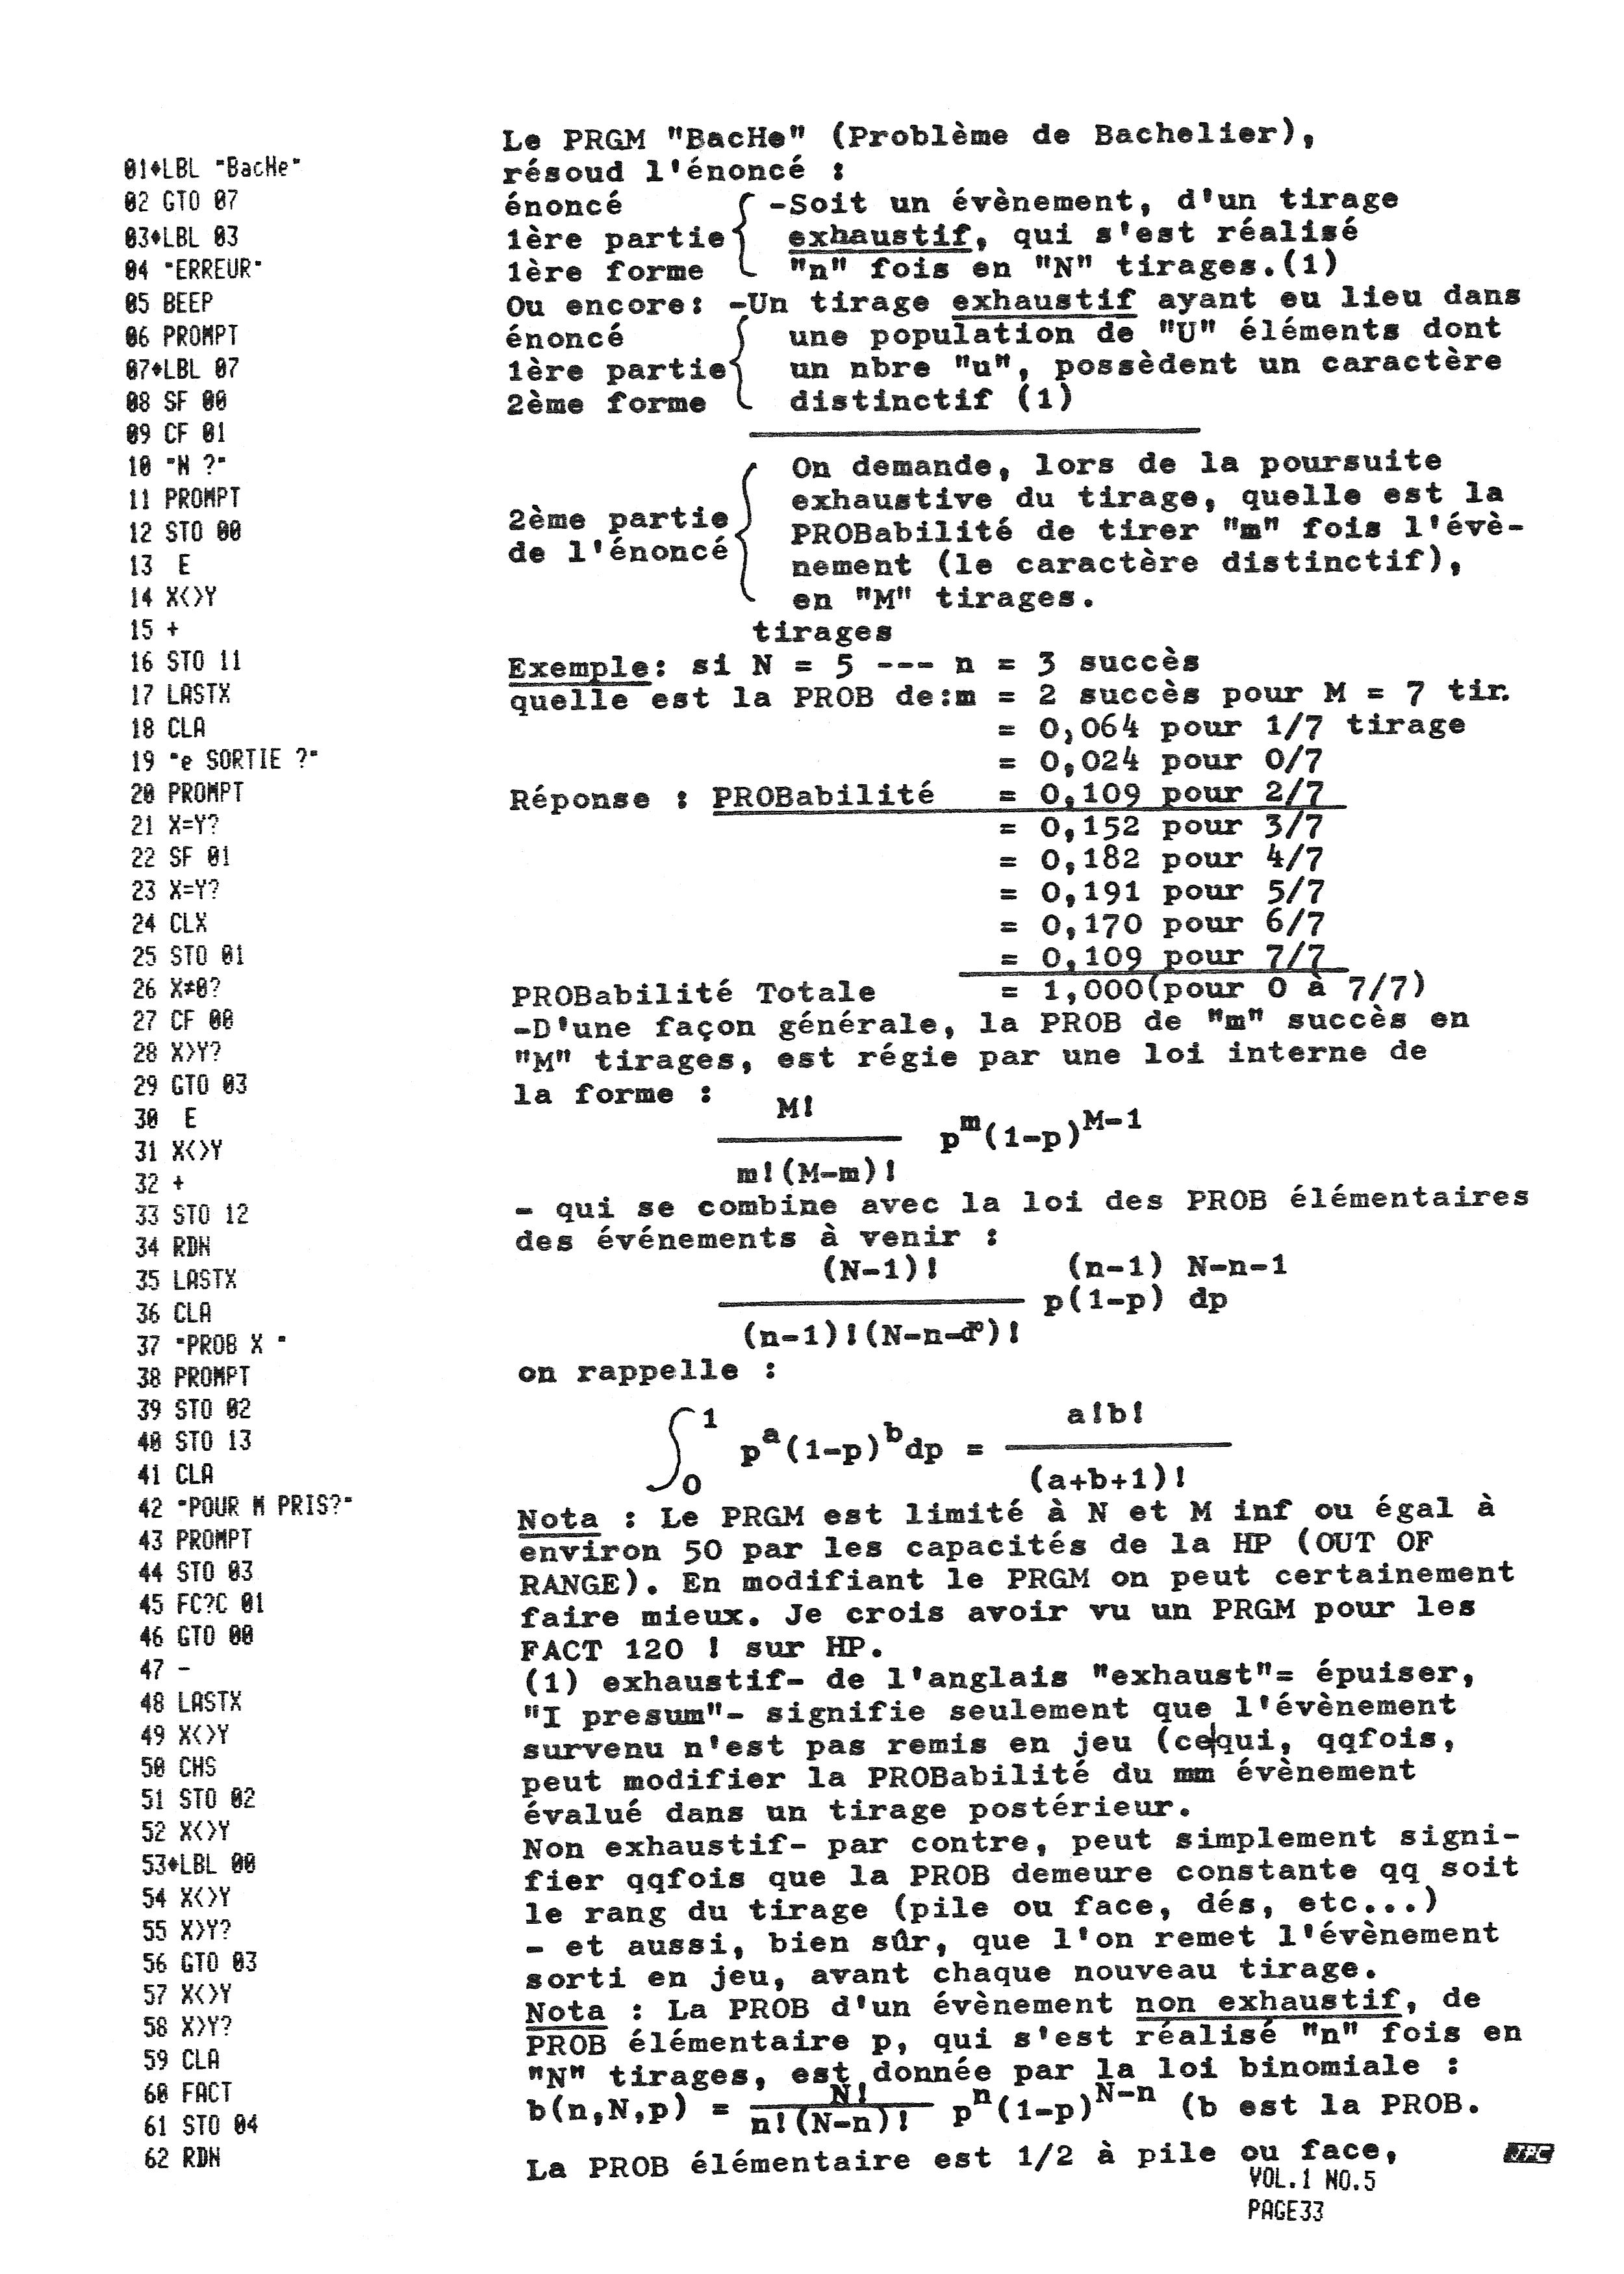 Jp-5-page-33-1000